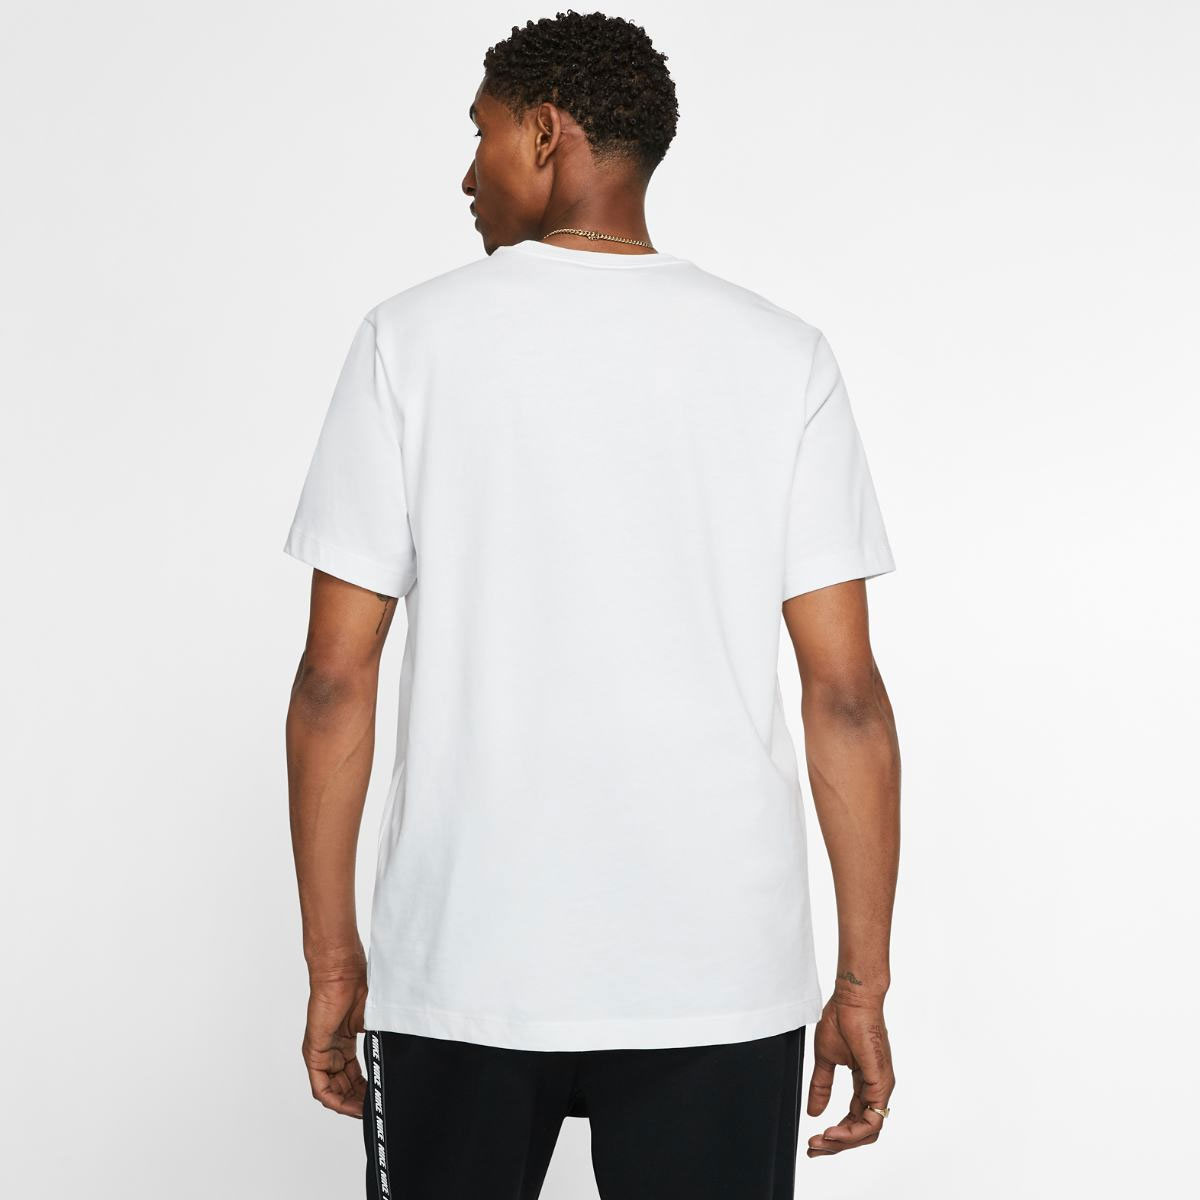 Nike Air Max Pocket T Shirt Black CK2793 010